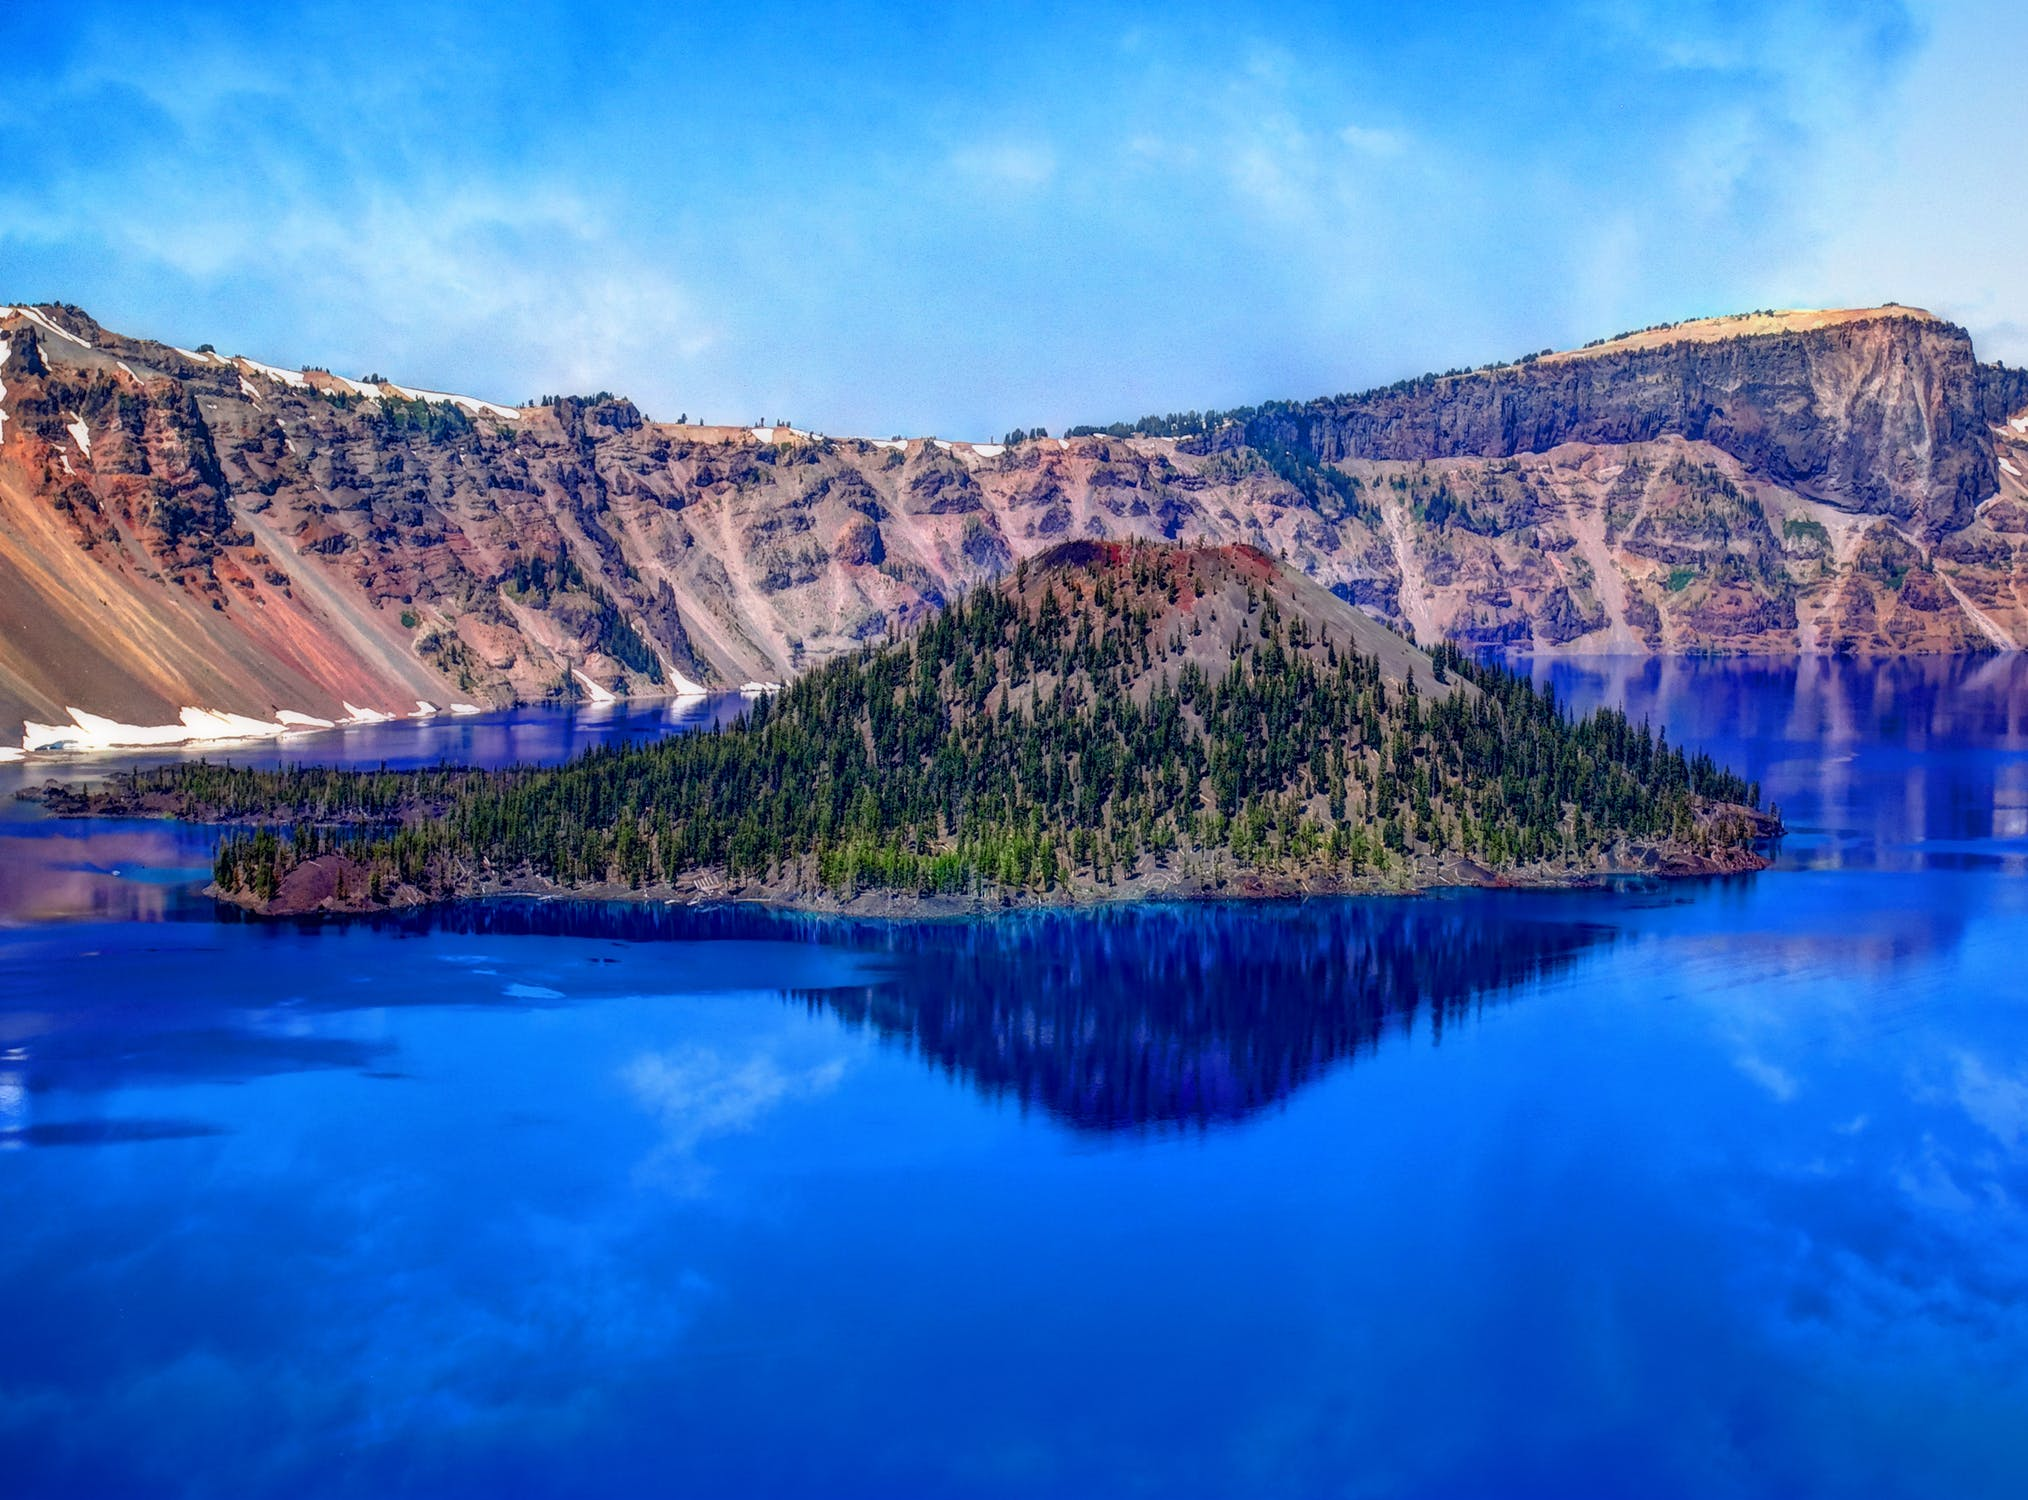 This is a picture of Crater Lake in Oregon